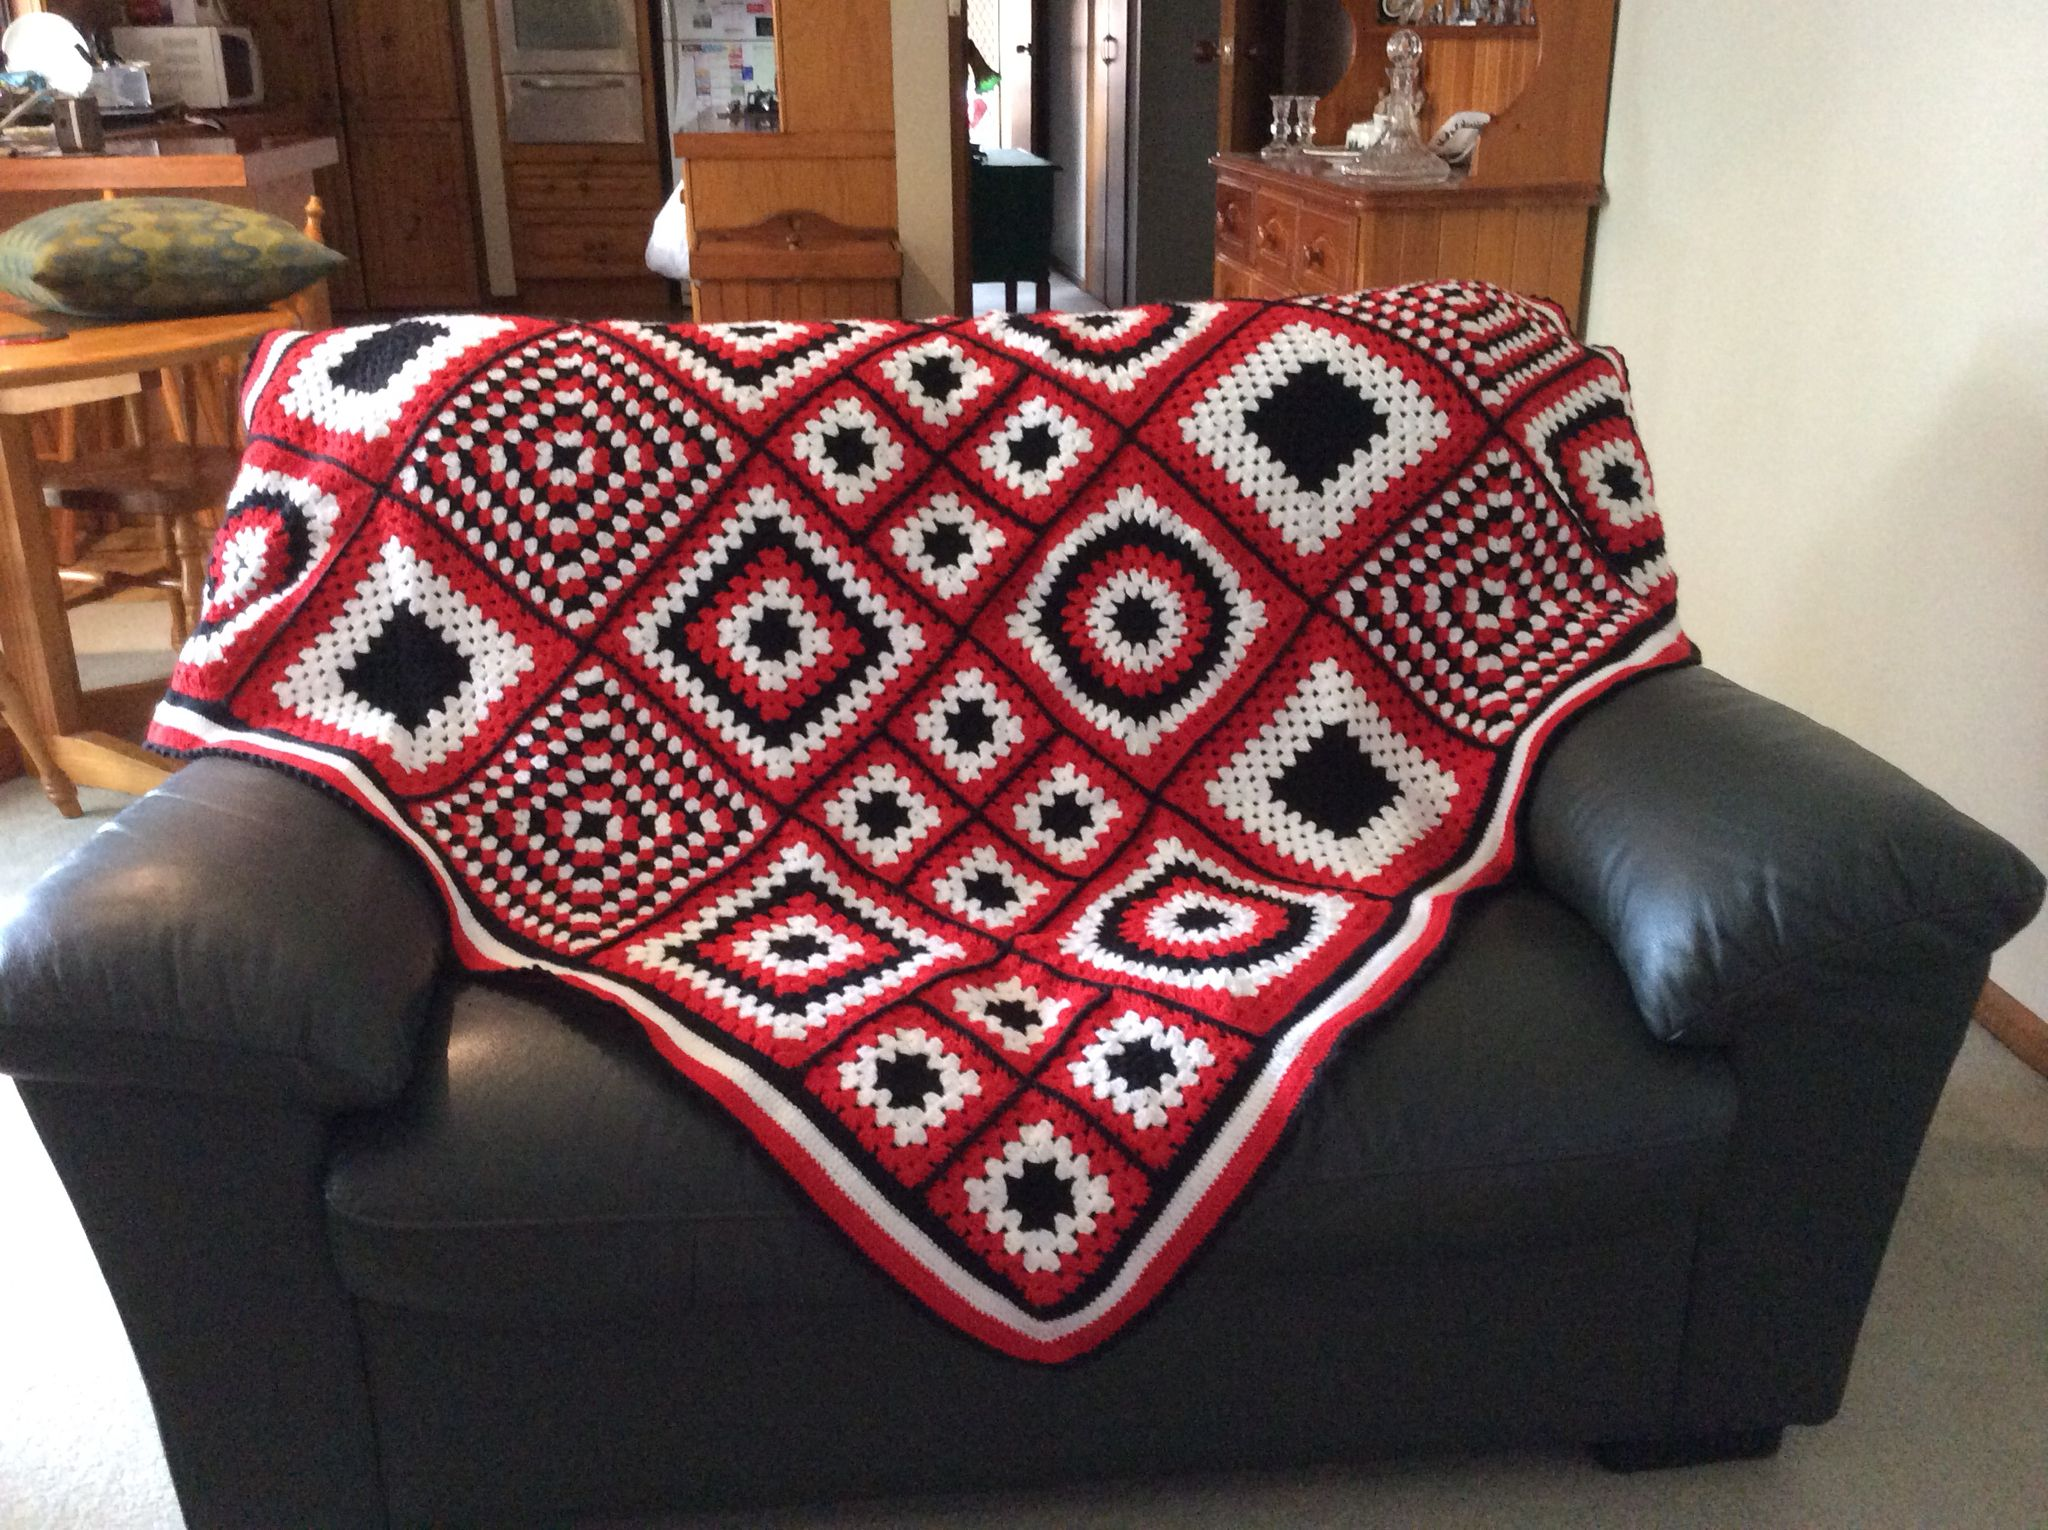 Rug In St Kilda Football Team Colours